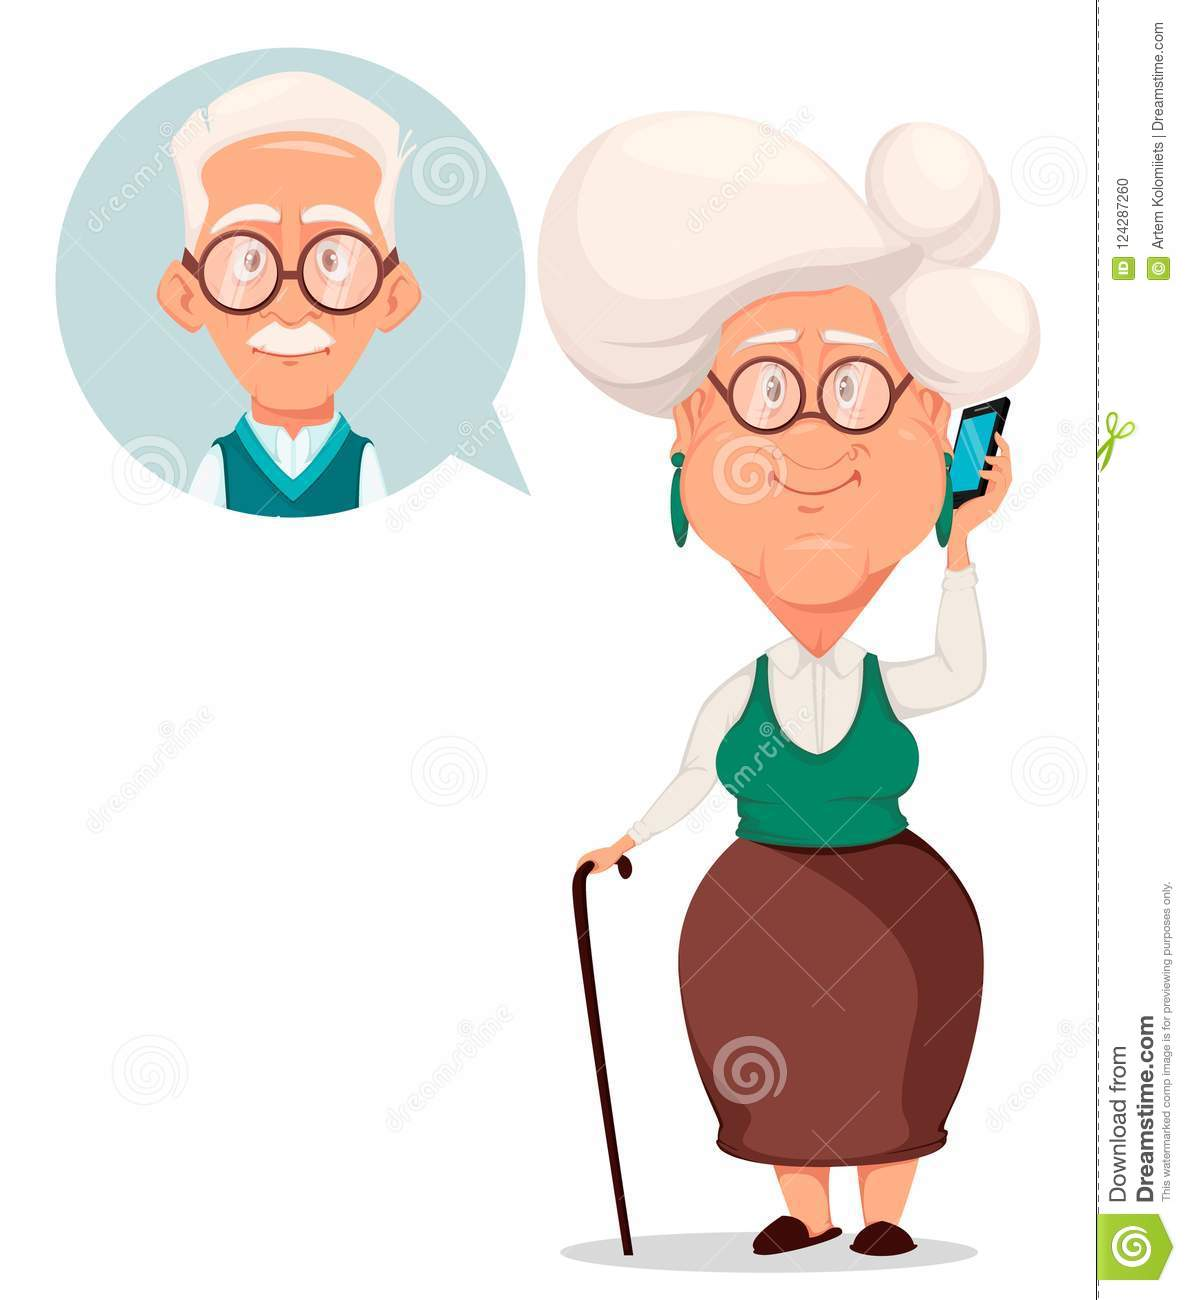 Grandparents day greeting card grandmother calling to grandfather download grandparents day greeting card grandmother calling to grandfather stock vector illustration of characters m4hsunfo